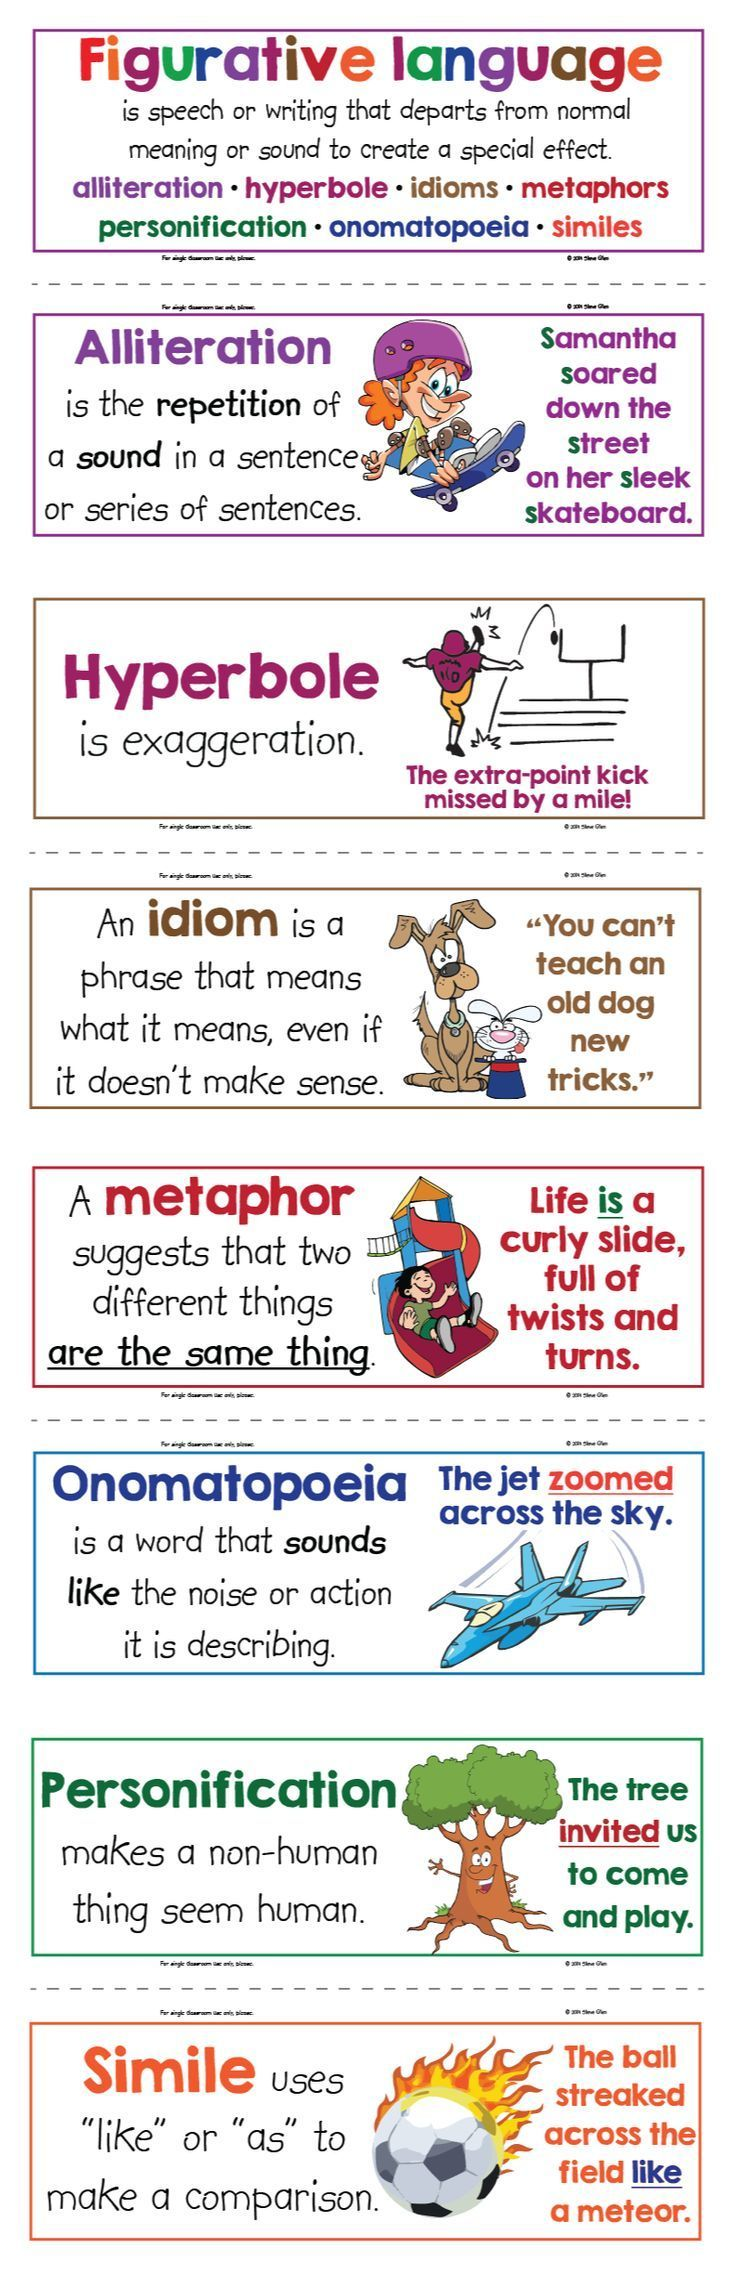 worksheet Similes And Metaphors Ks2 Worksheets 161 best figurative language images on pinterest powers of 10 math face off 5 nbt 2